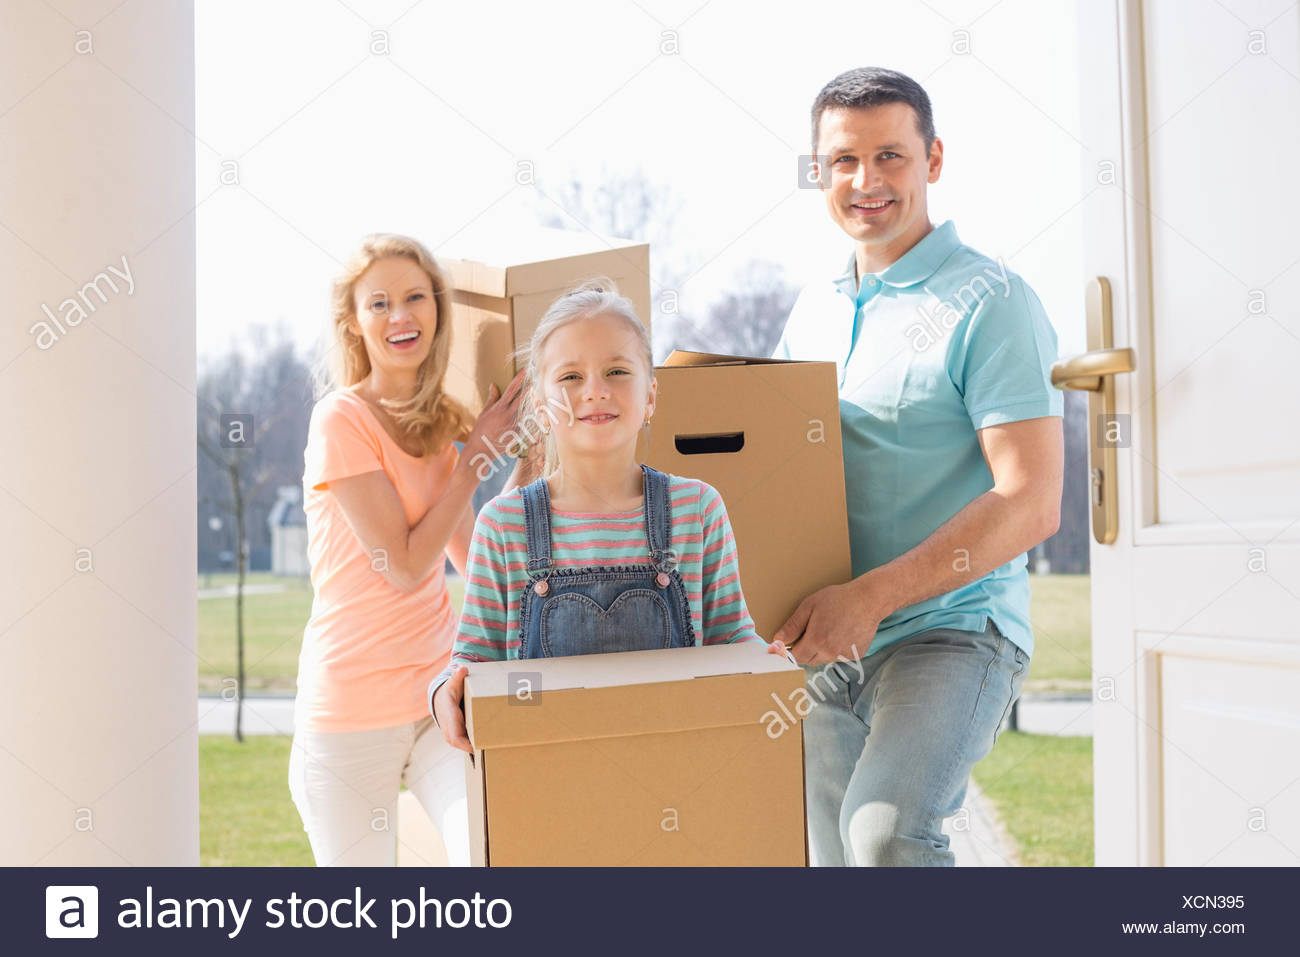 Happy family with cardboard boxes entering new home Stock Photo